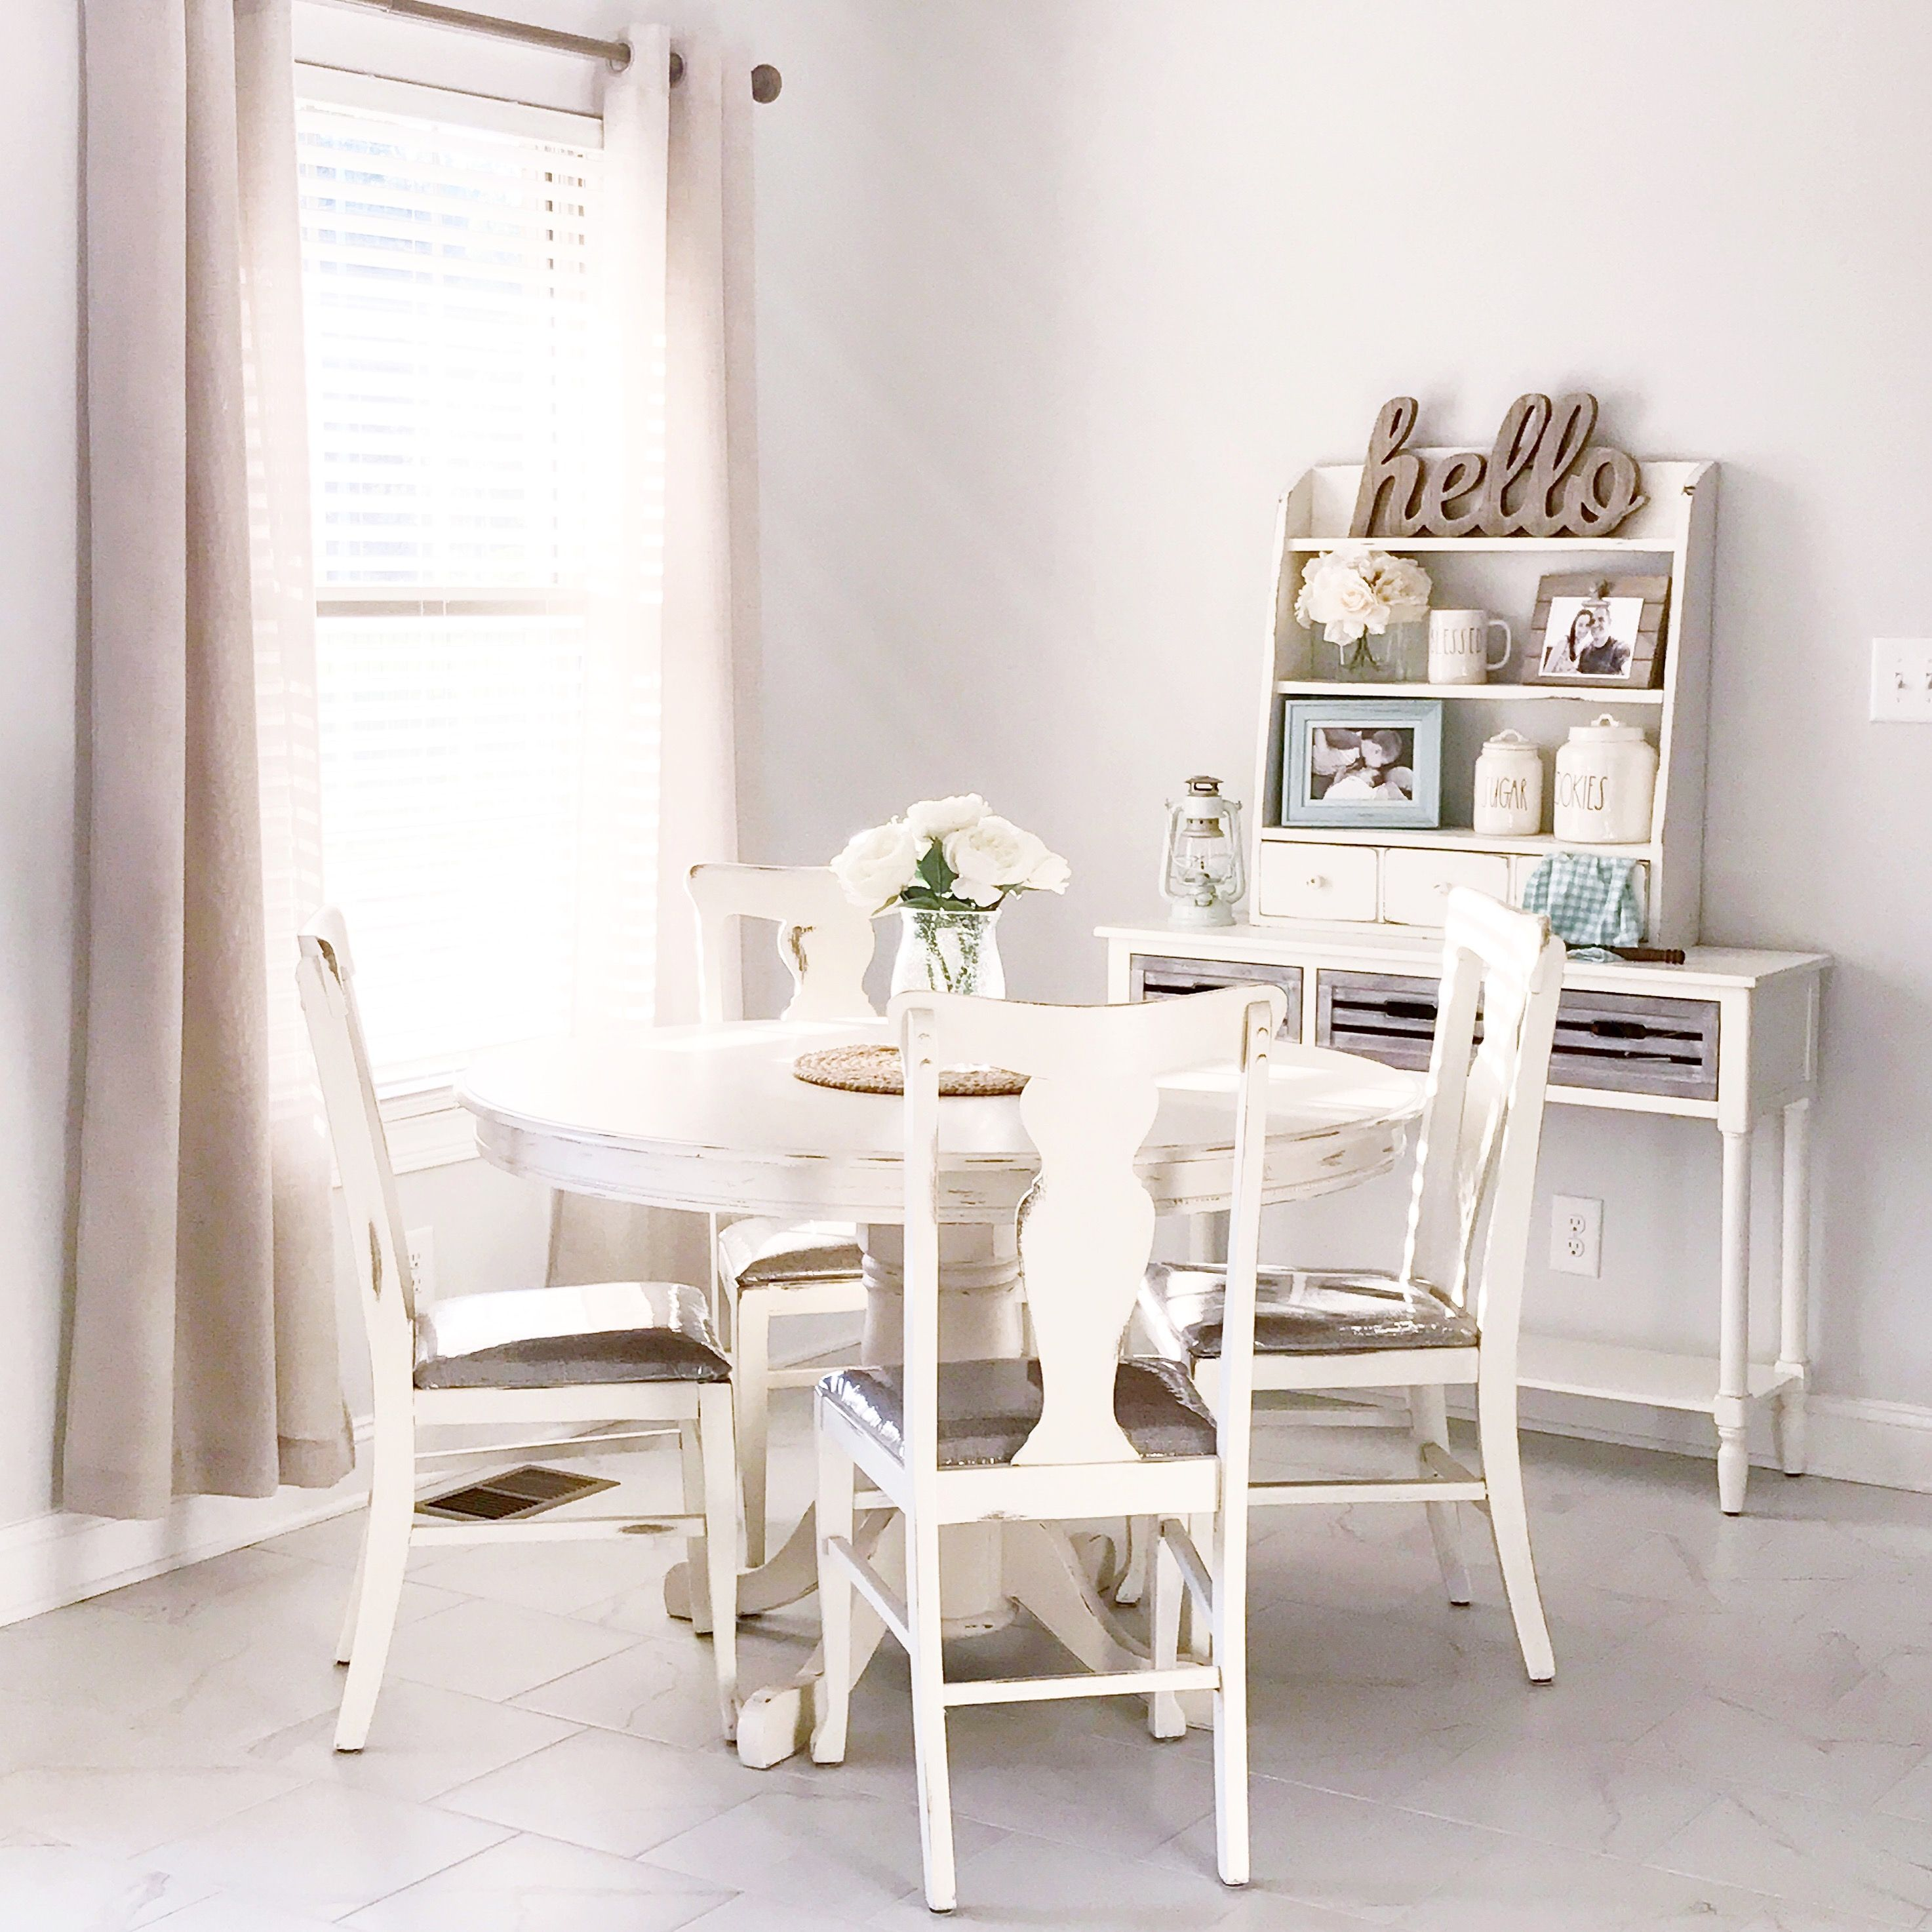 A farmhouse style pedestal table and antique chairs in my